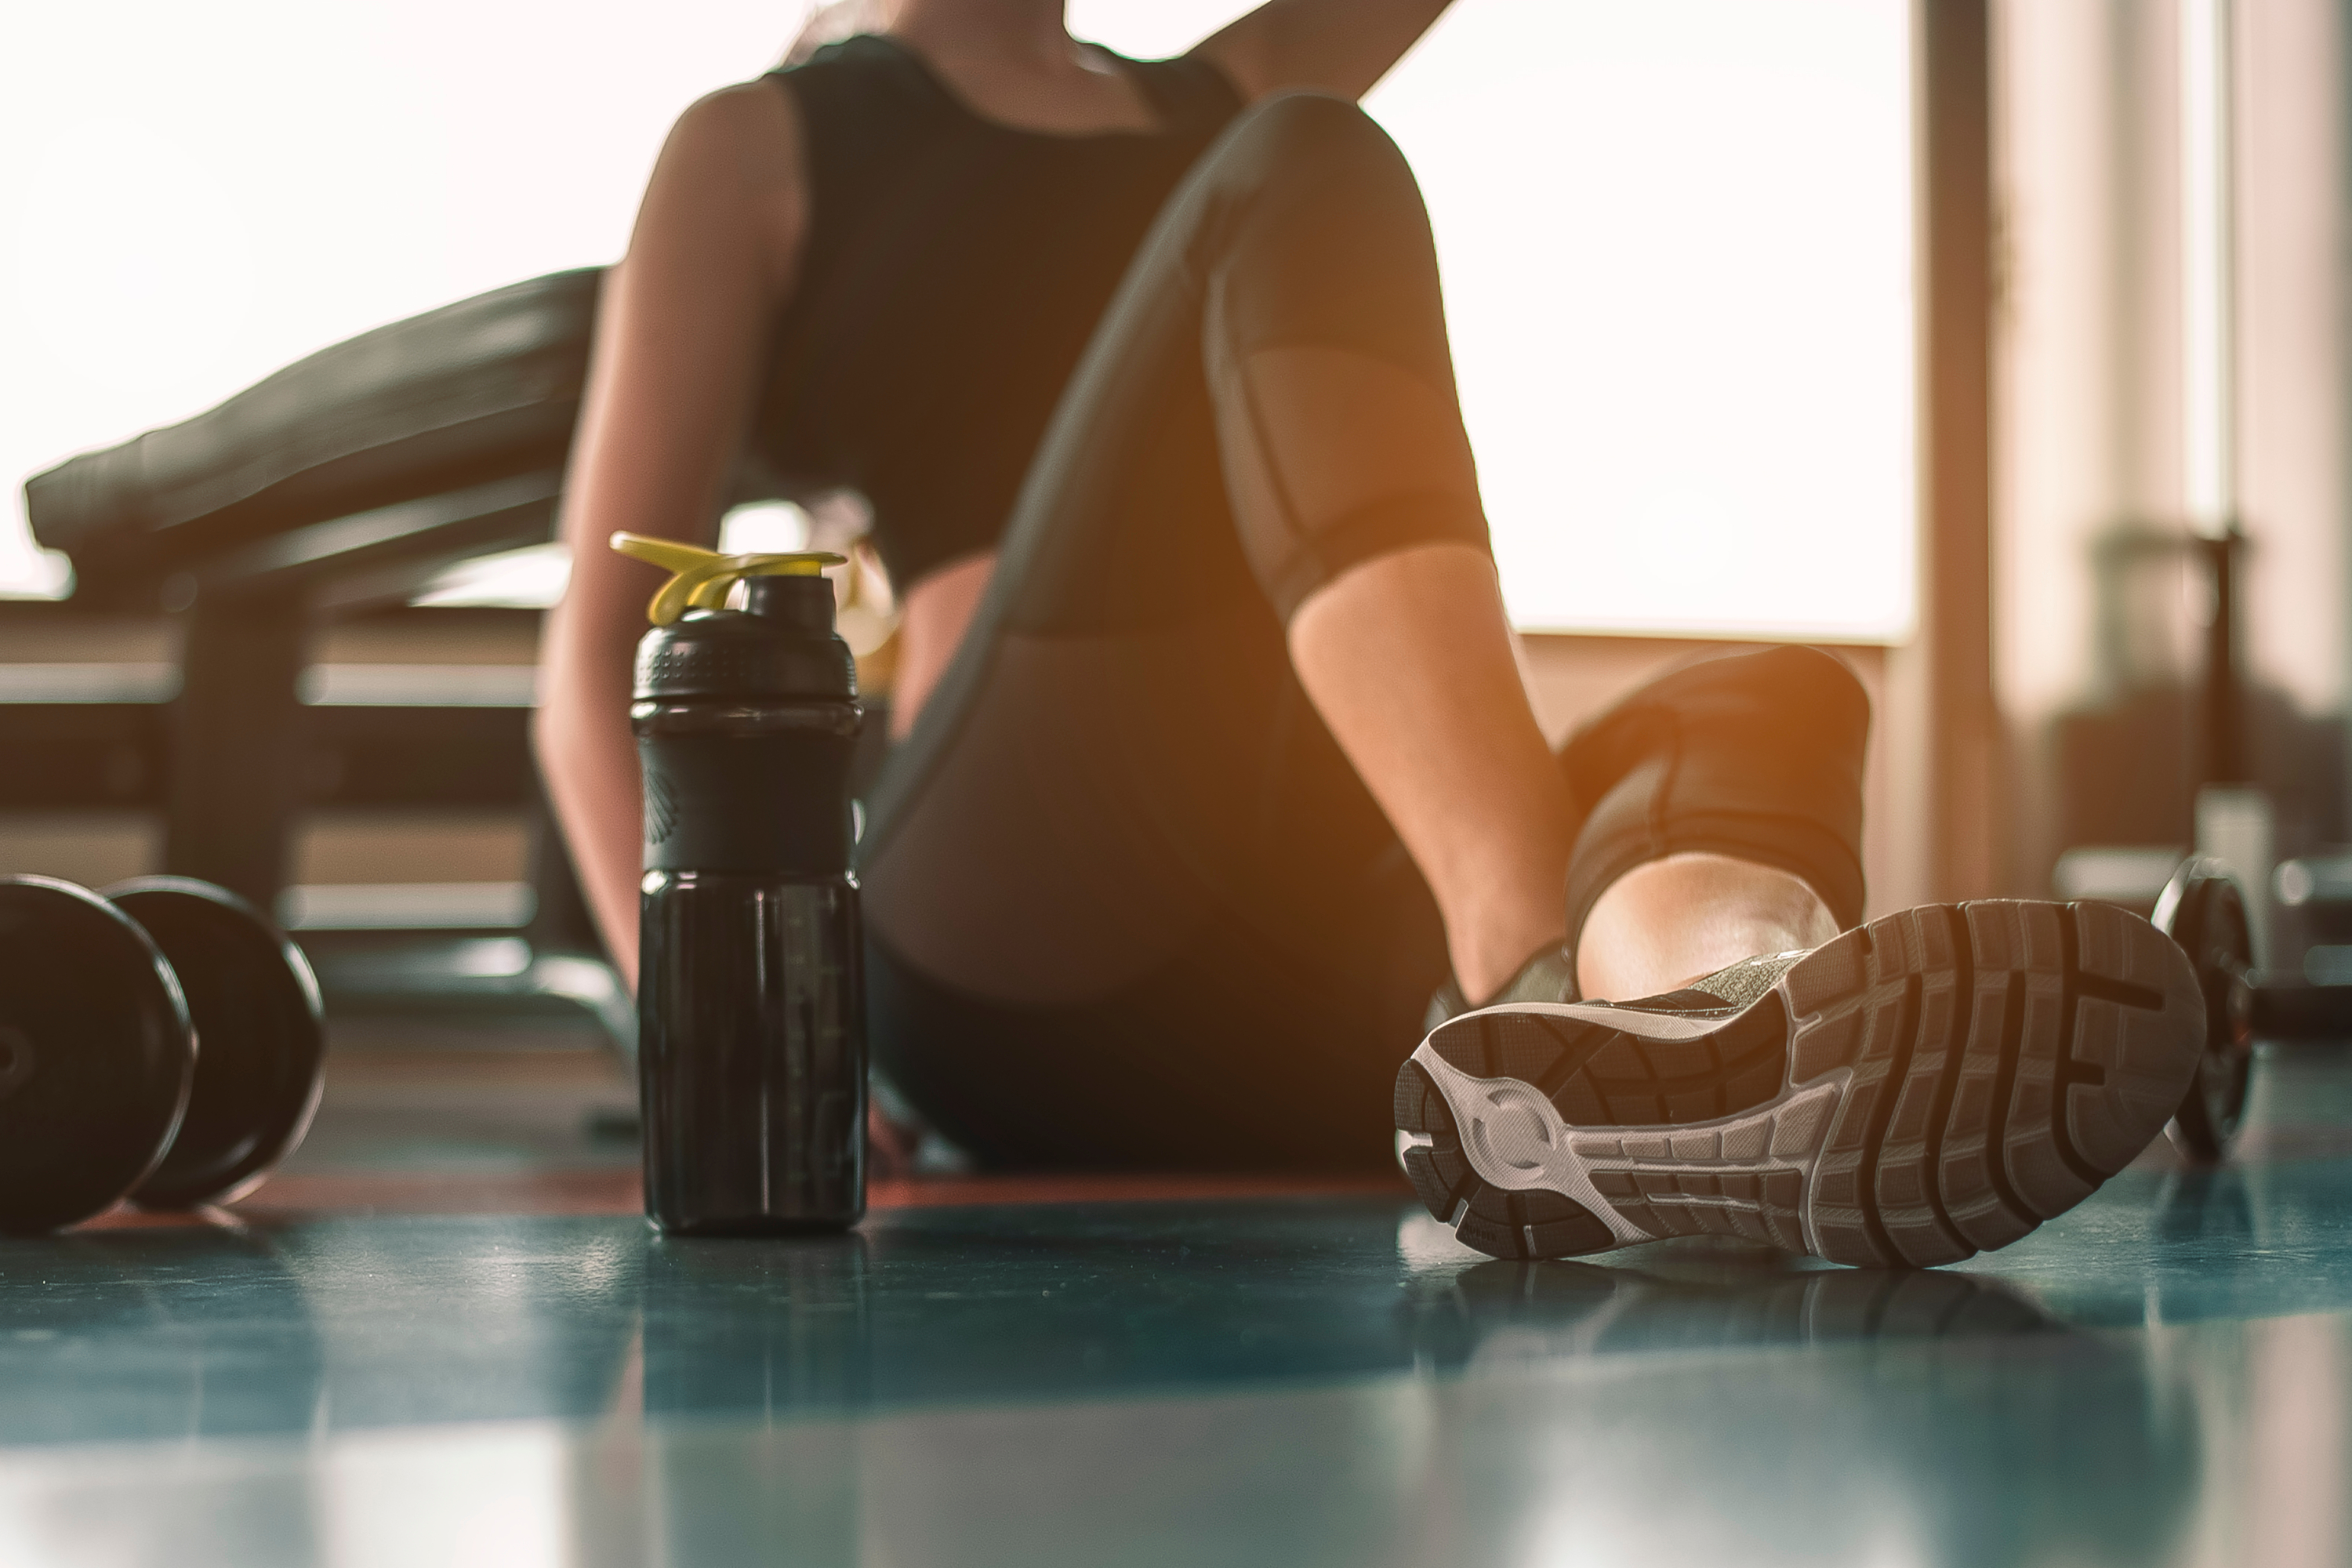 Sometimes life gets a little crazy and it can be incredibly difficult to work out. These fitness tips will help you maintain a healthy lifestyle. Try our quick at-home workout on your busy days.